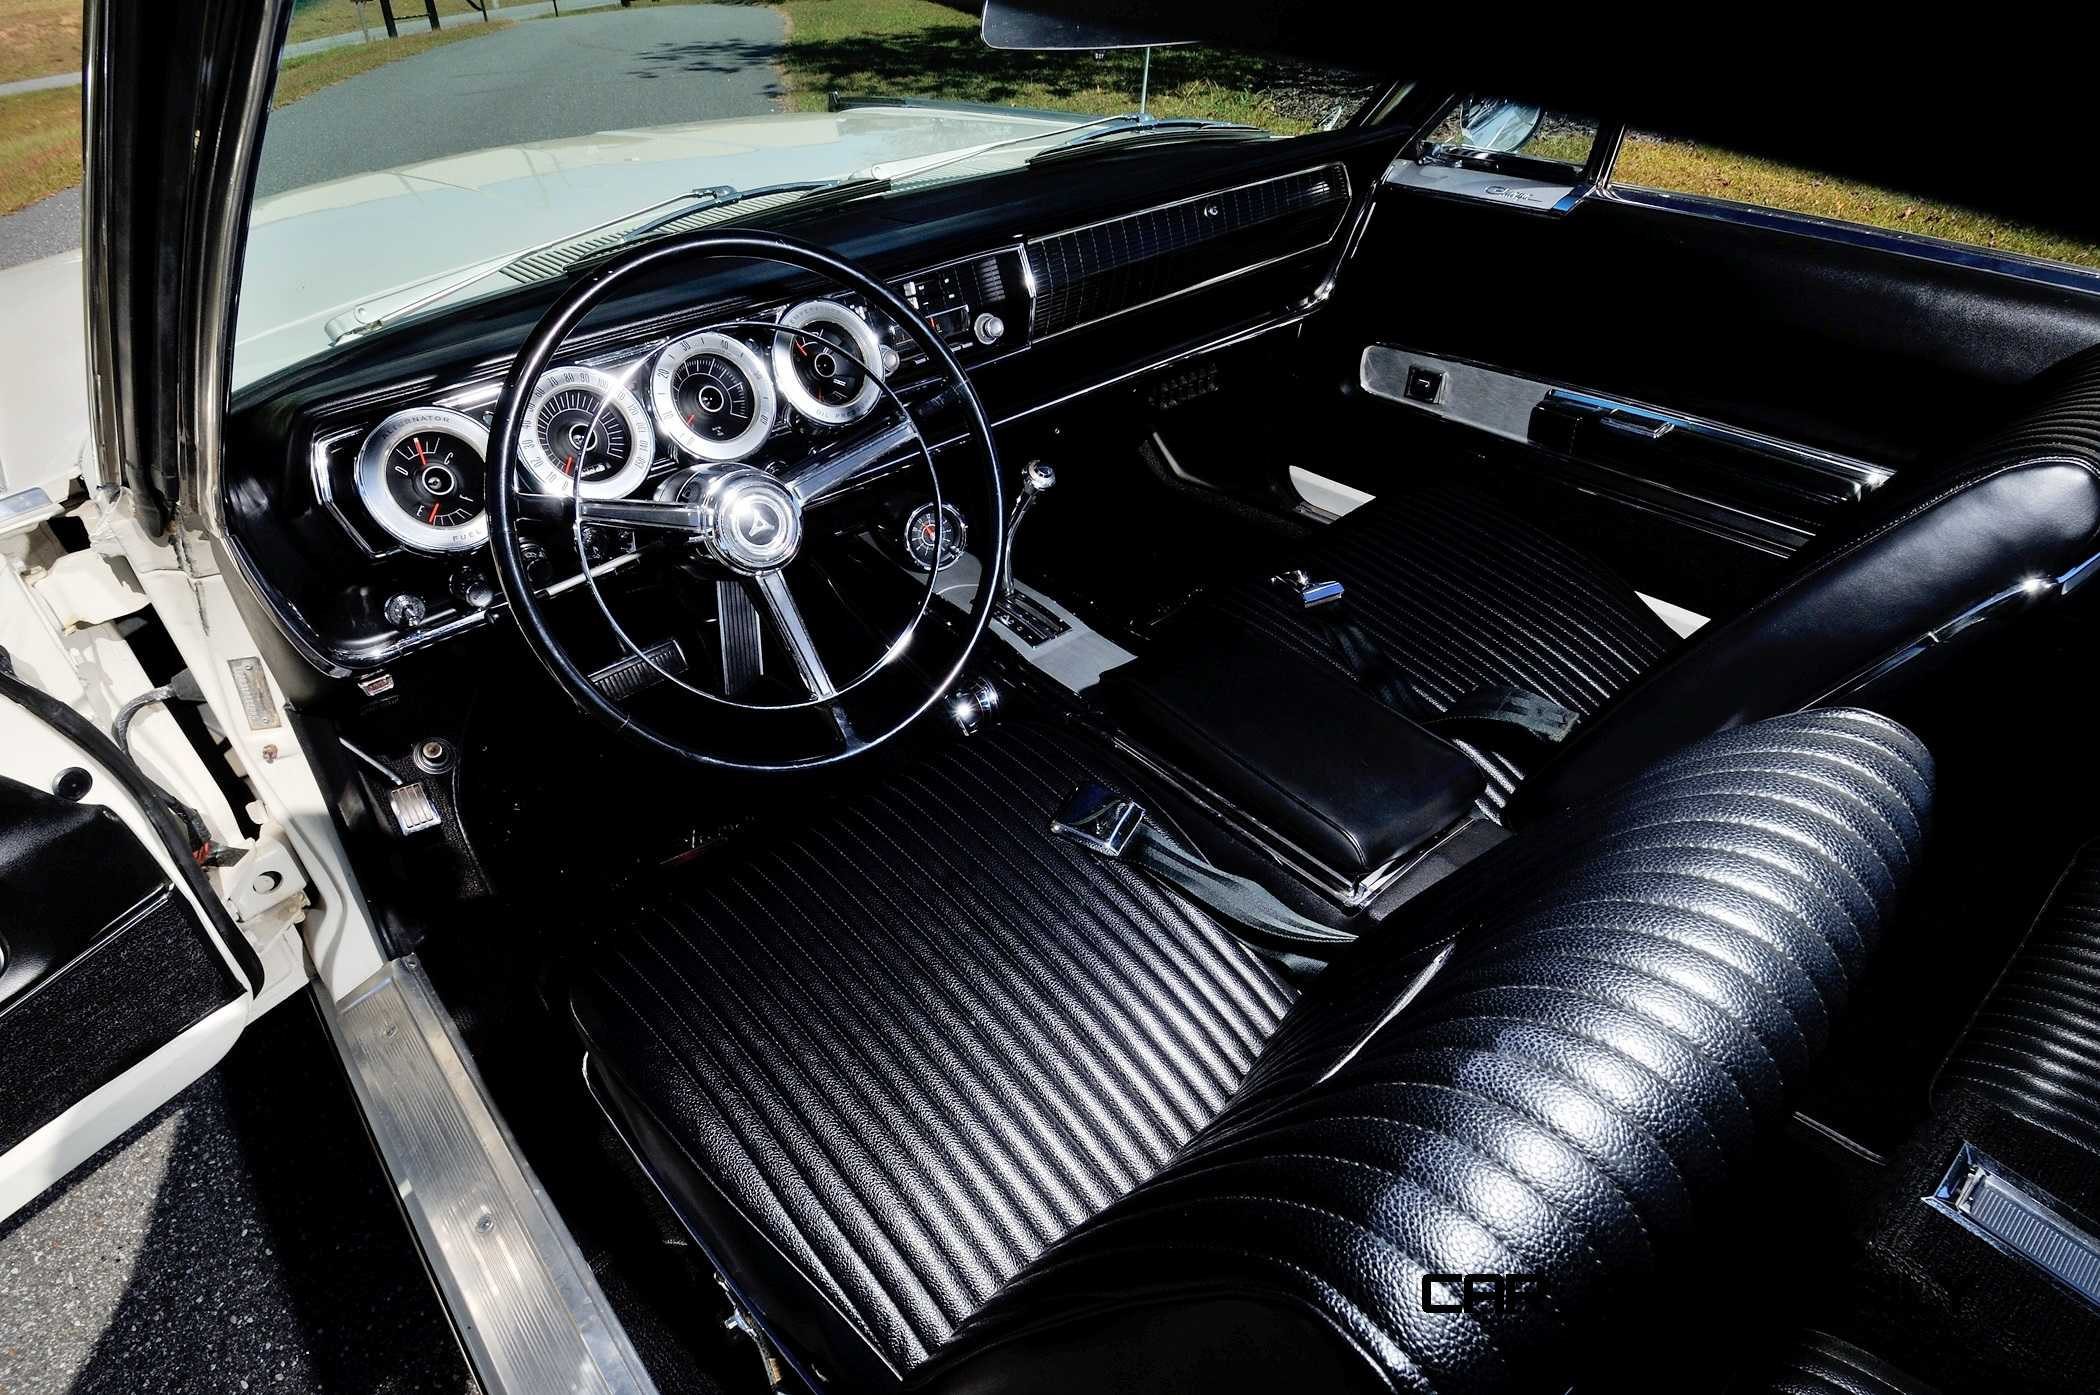 Dodge Charger Rt For Sale >> 1967 Dodge Hemi Charger Show Car